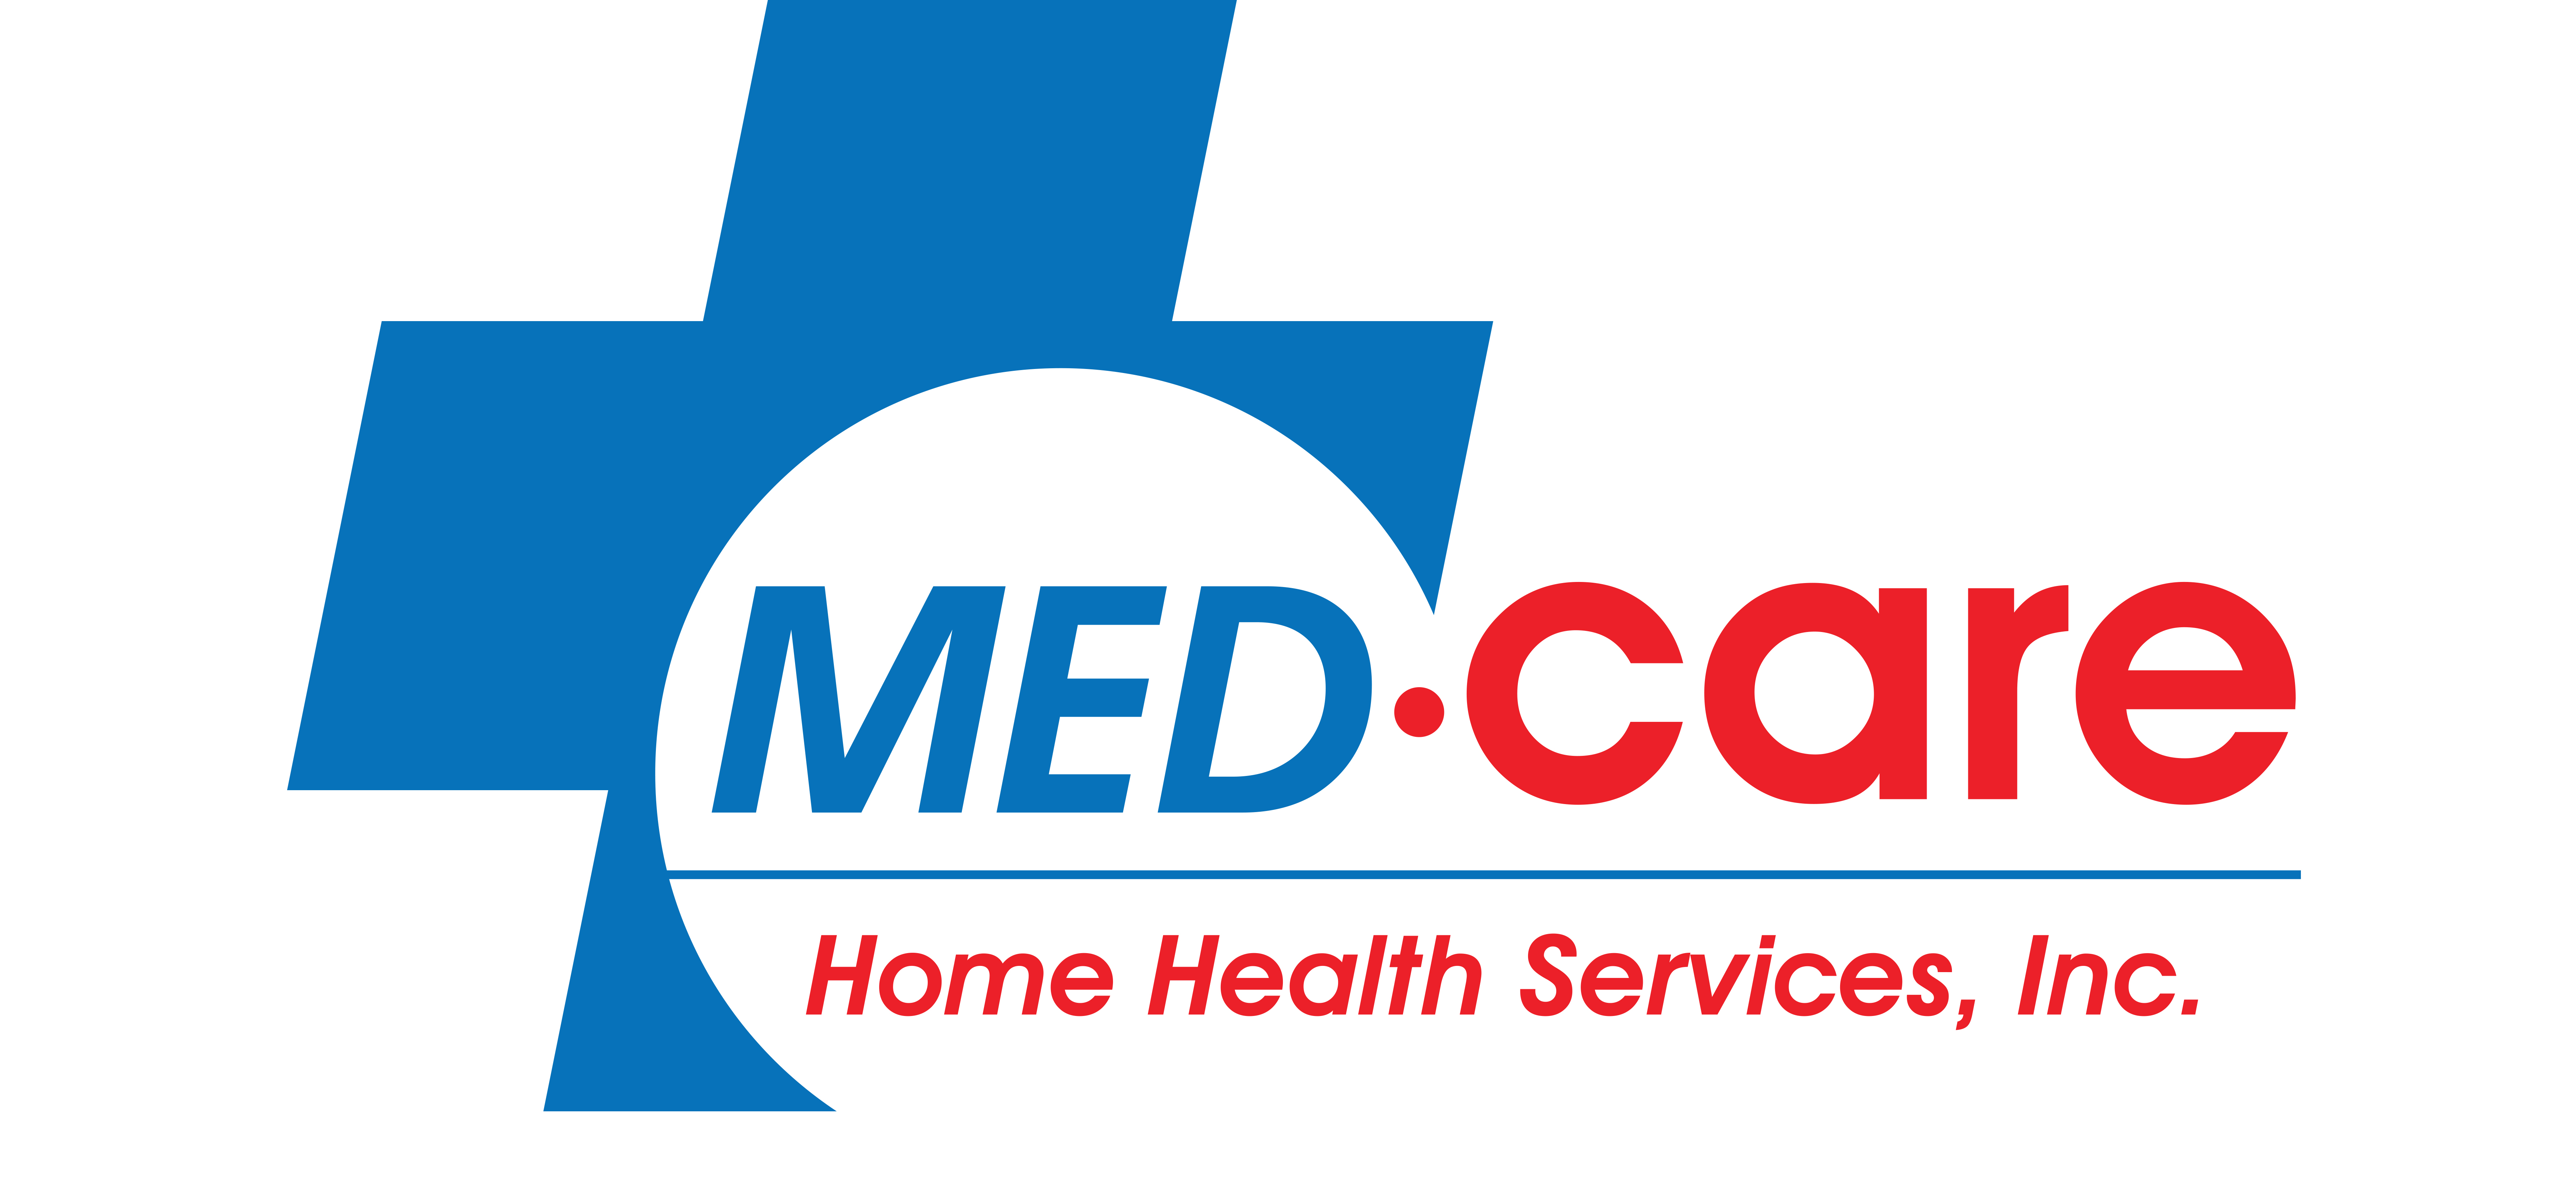 Med-Care Home Health